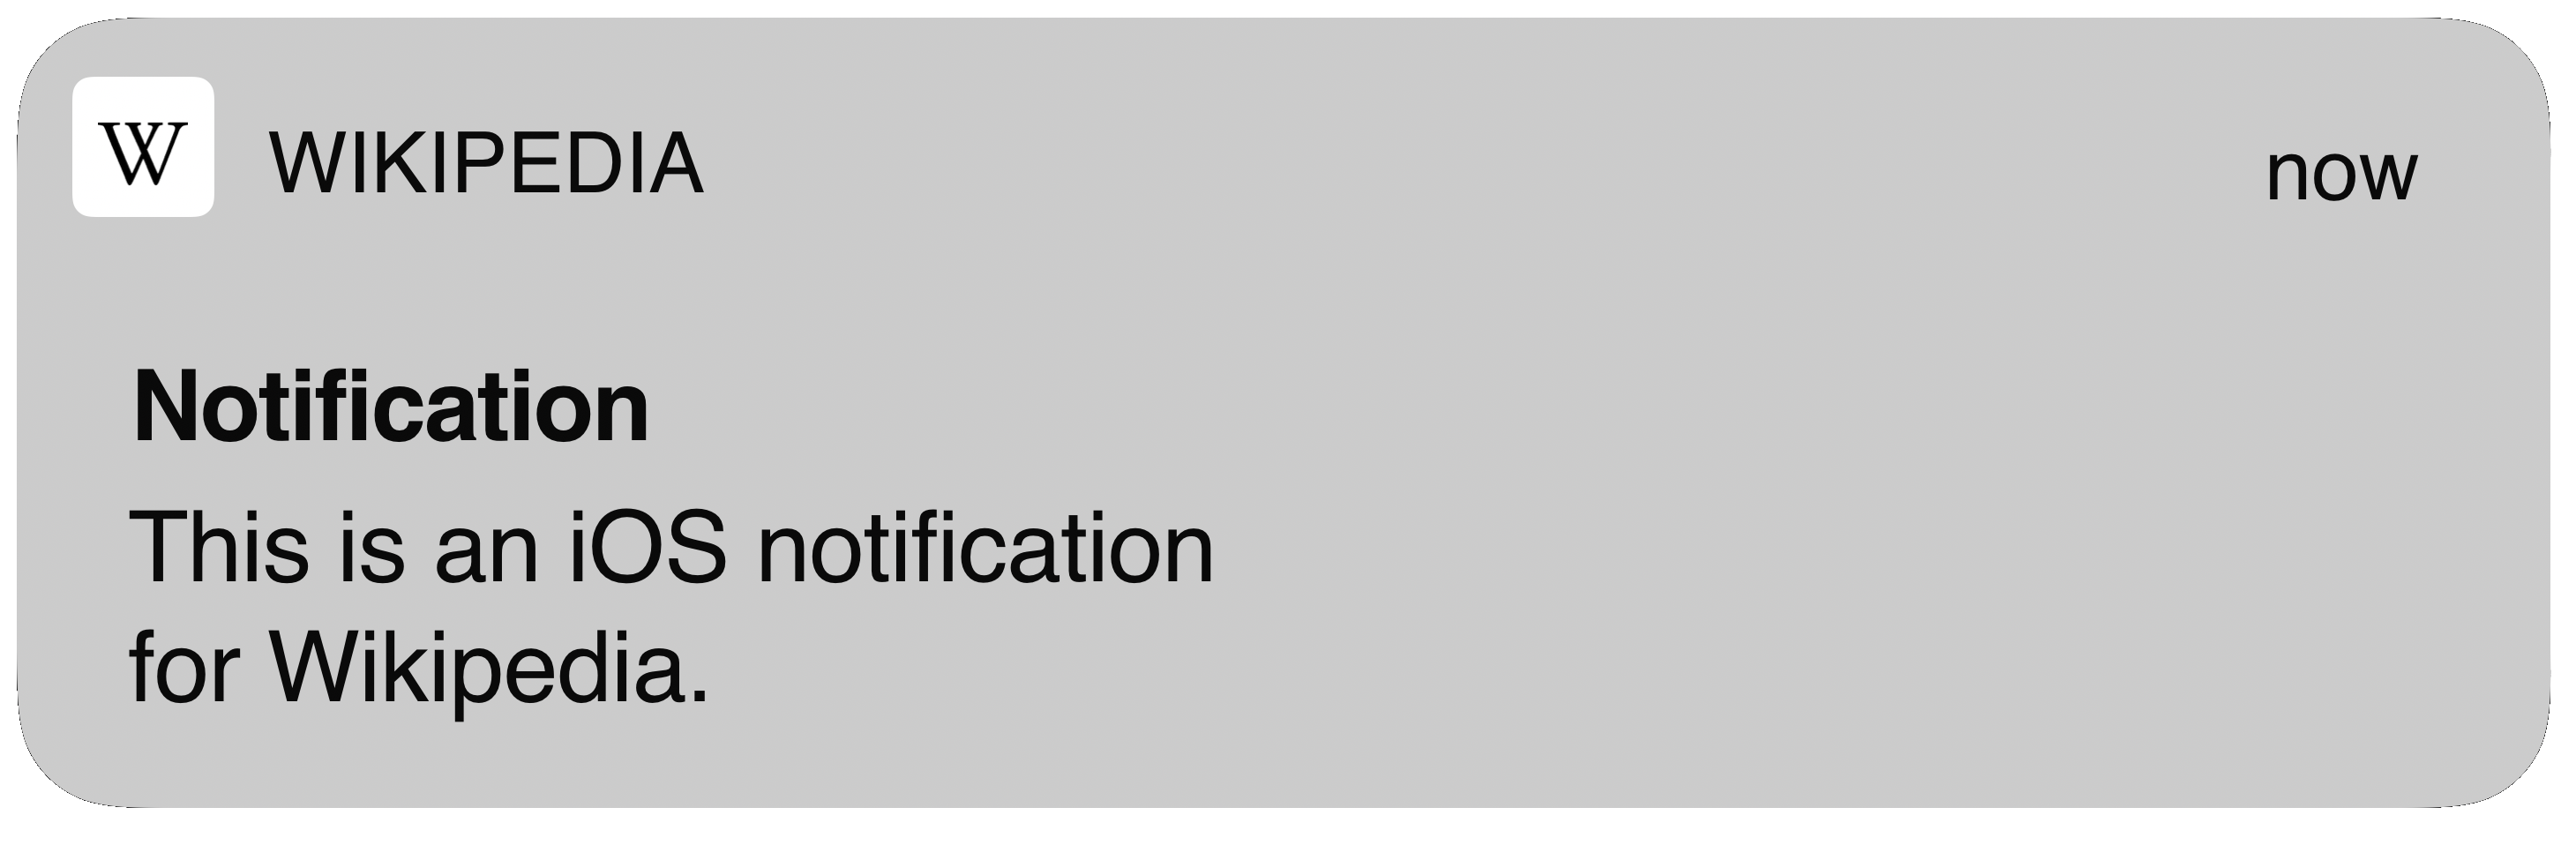 File:Notification iOS 12 png - Wikimedia Commons